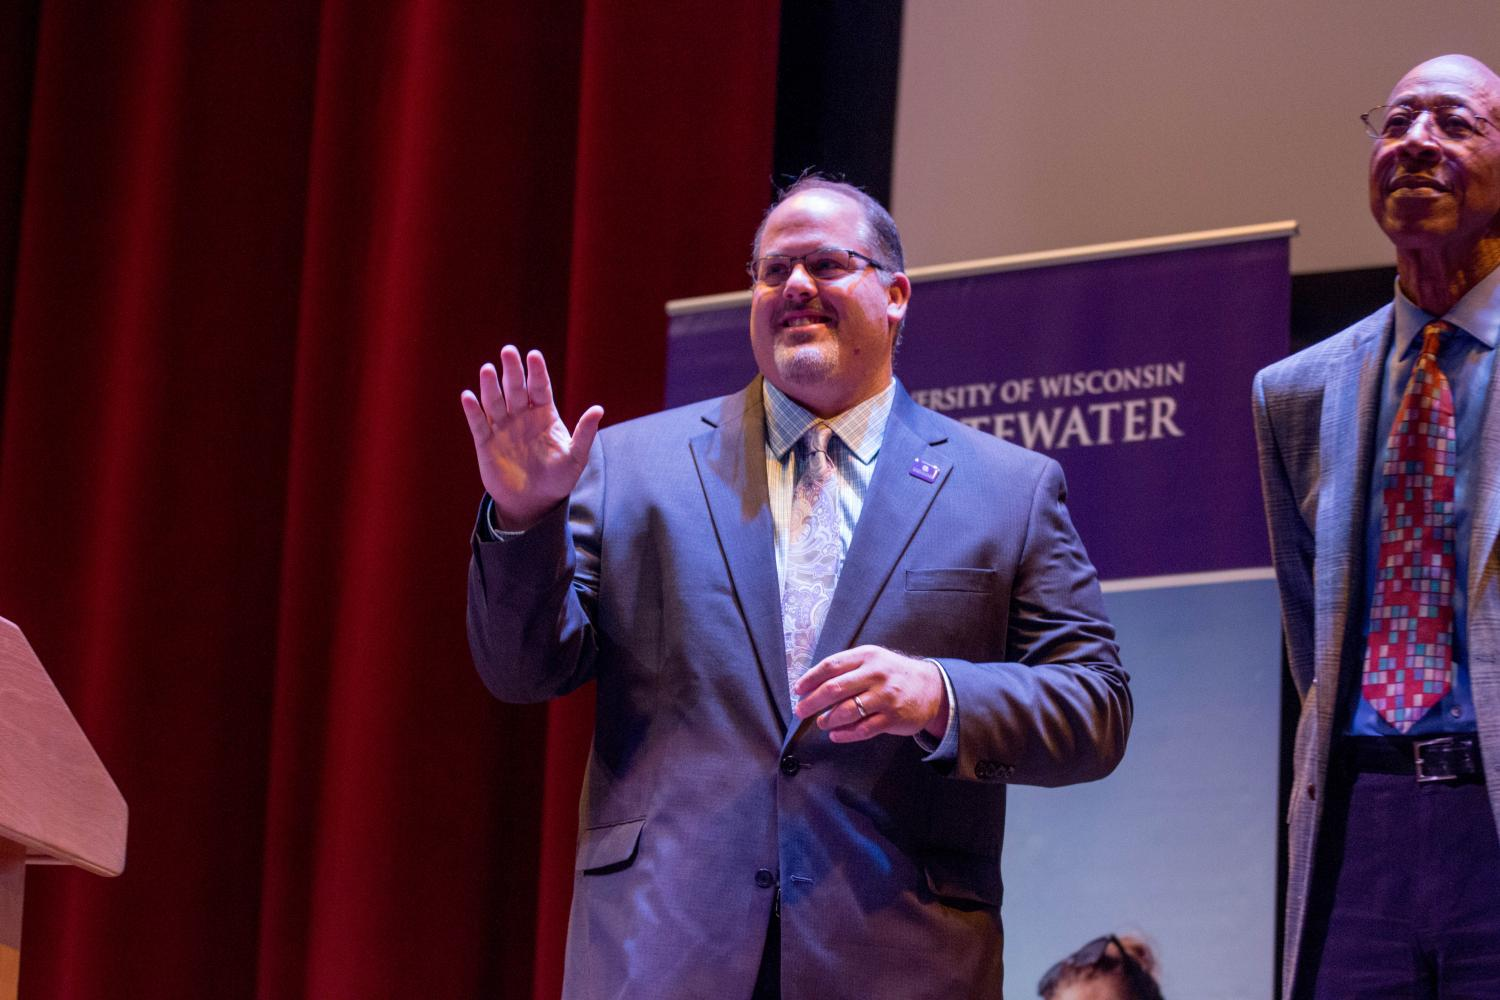 New athletic director brings D1 experience to UW-Whitewater